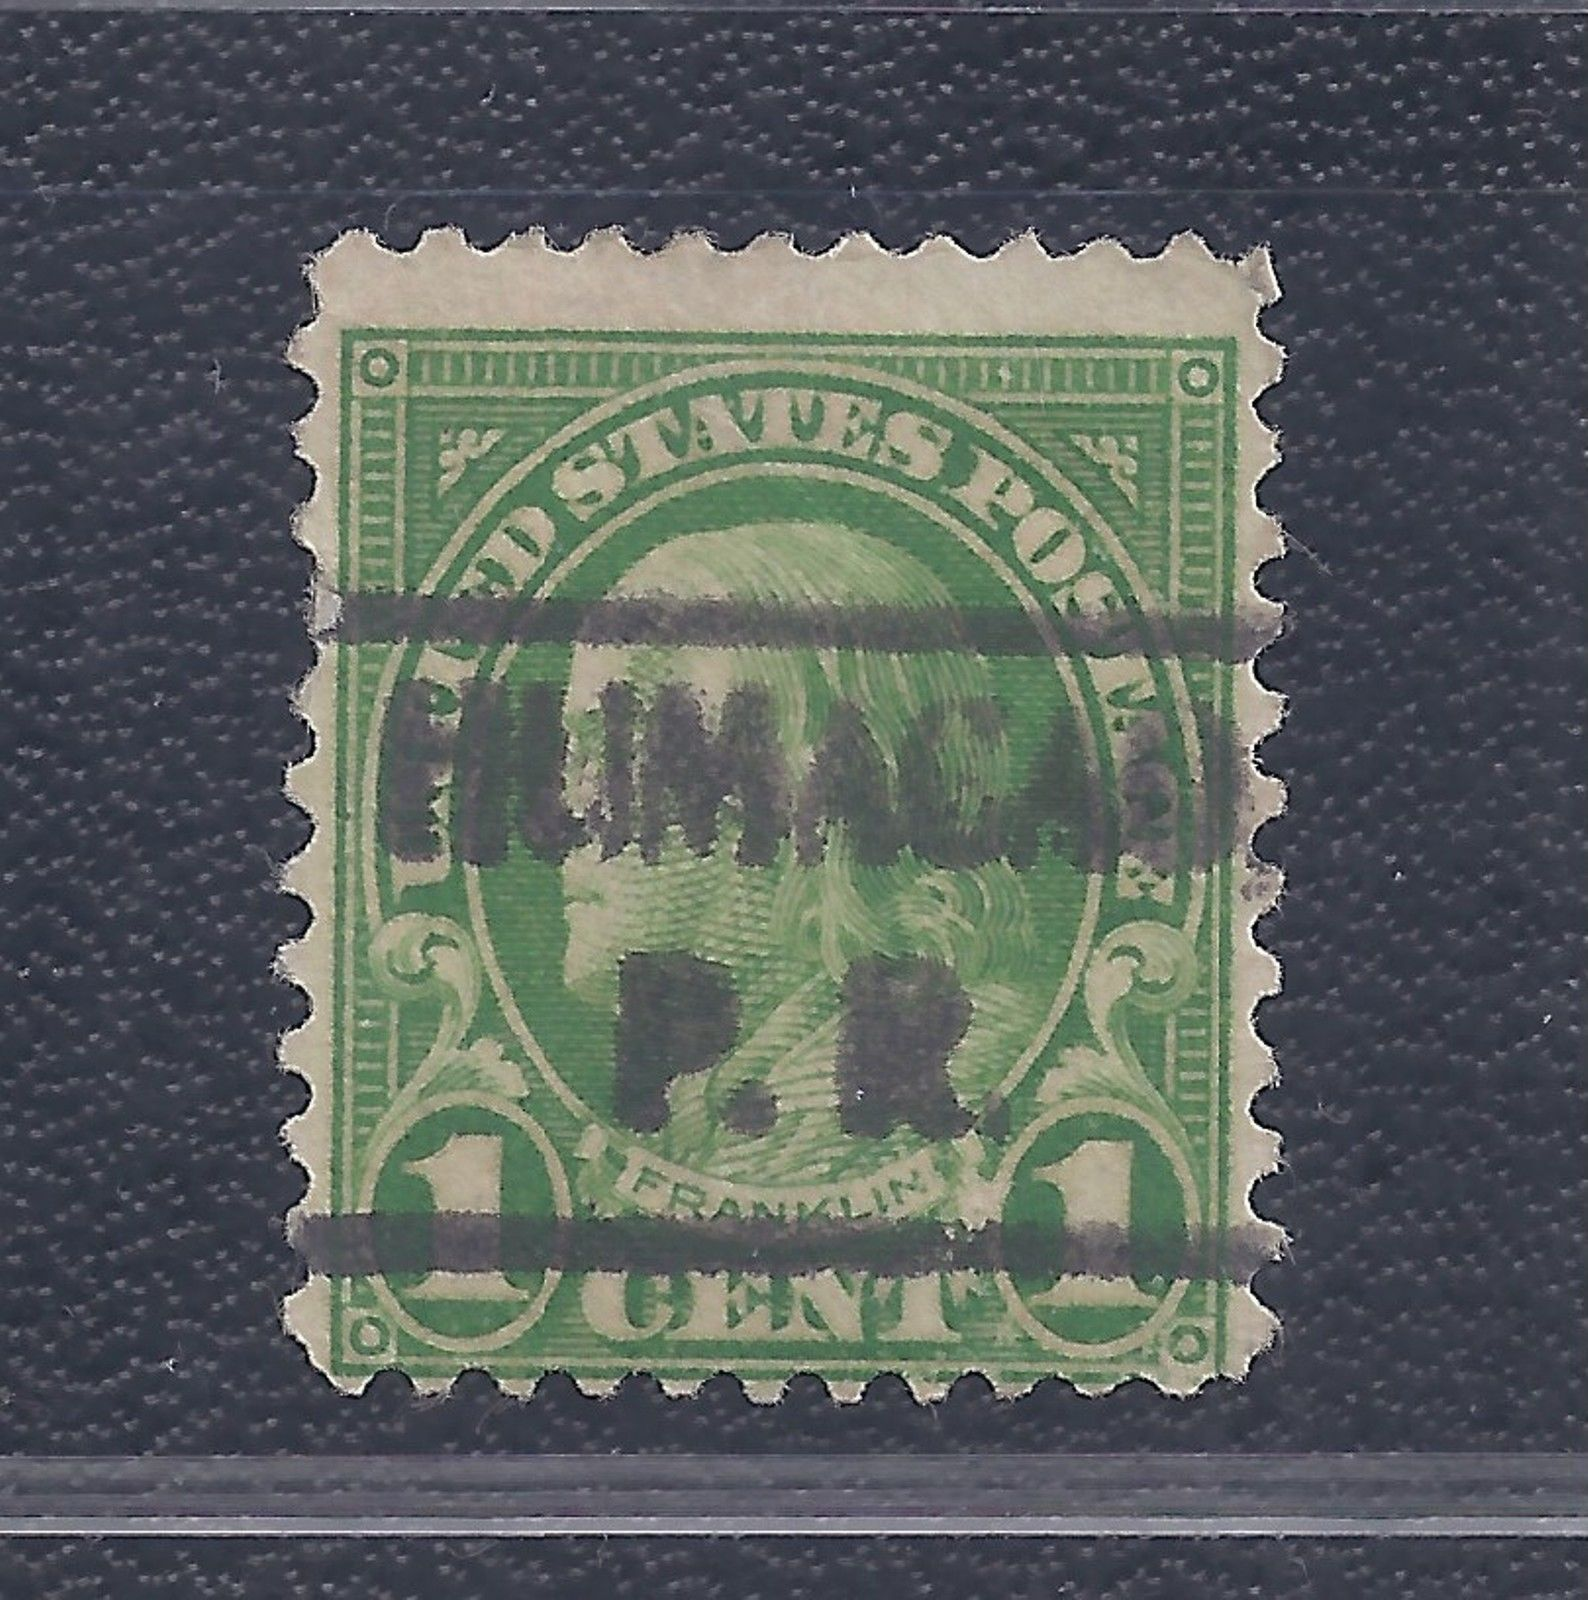 1 Cent Benjamin Franklin Stamp With HUMACAO P R Precancel PSS Type 492 On Scott 632 The Perf 11x10 2 From 1926 34 Series